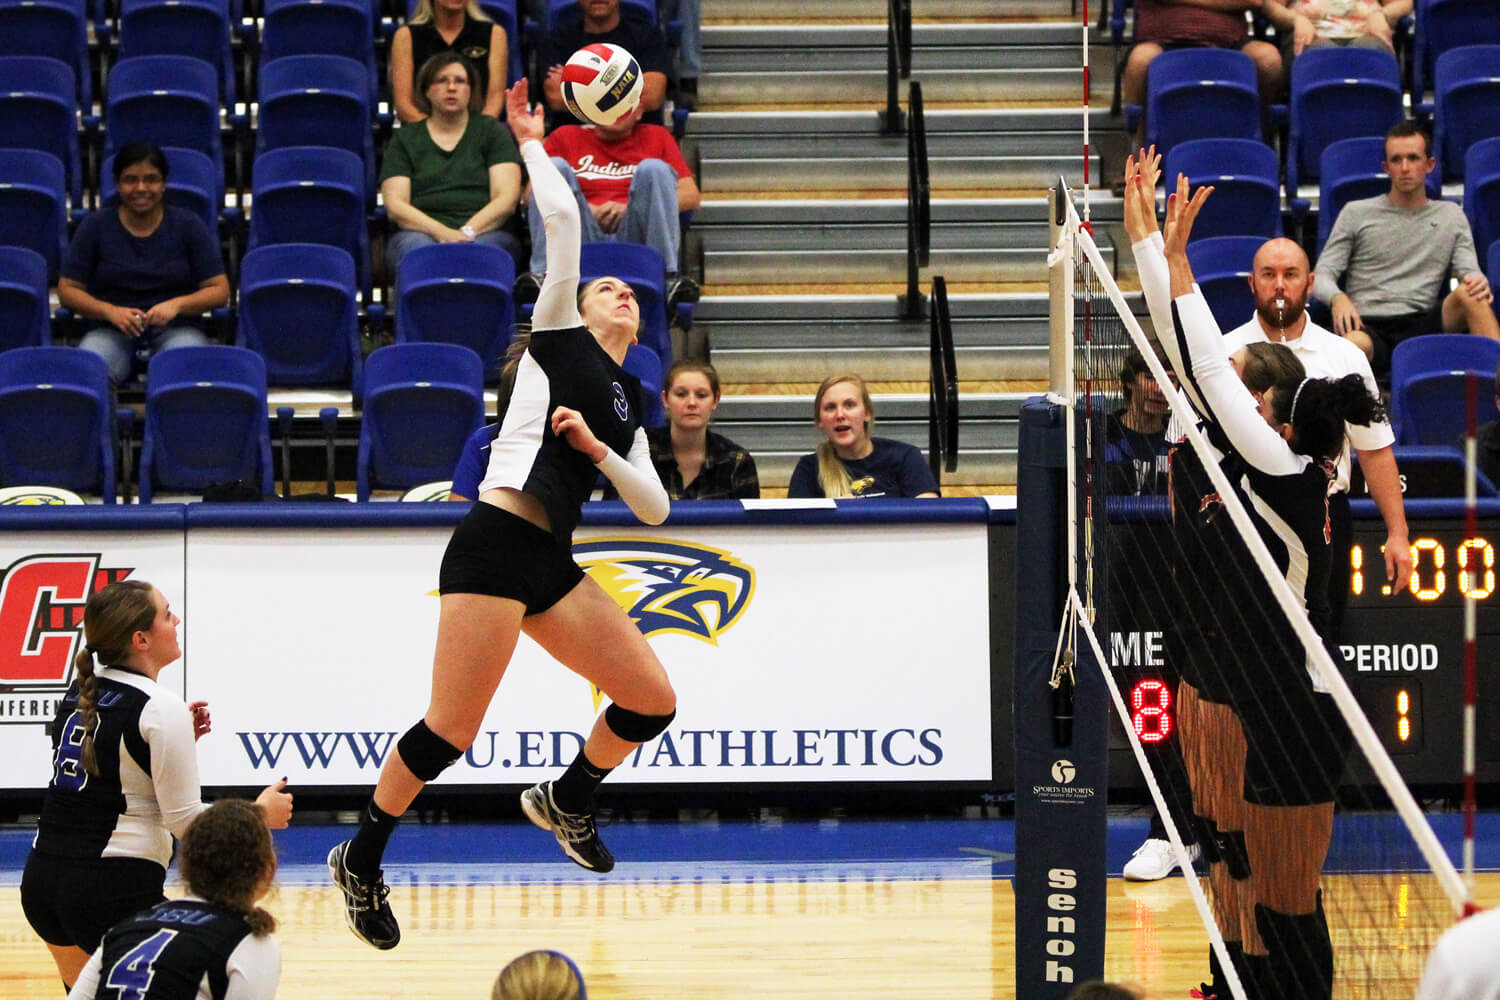 Volleyball Positions Understanding The Roles Of